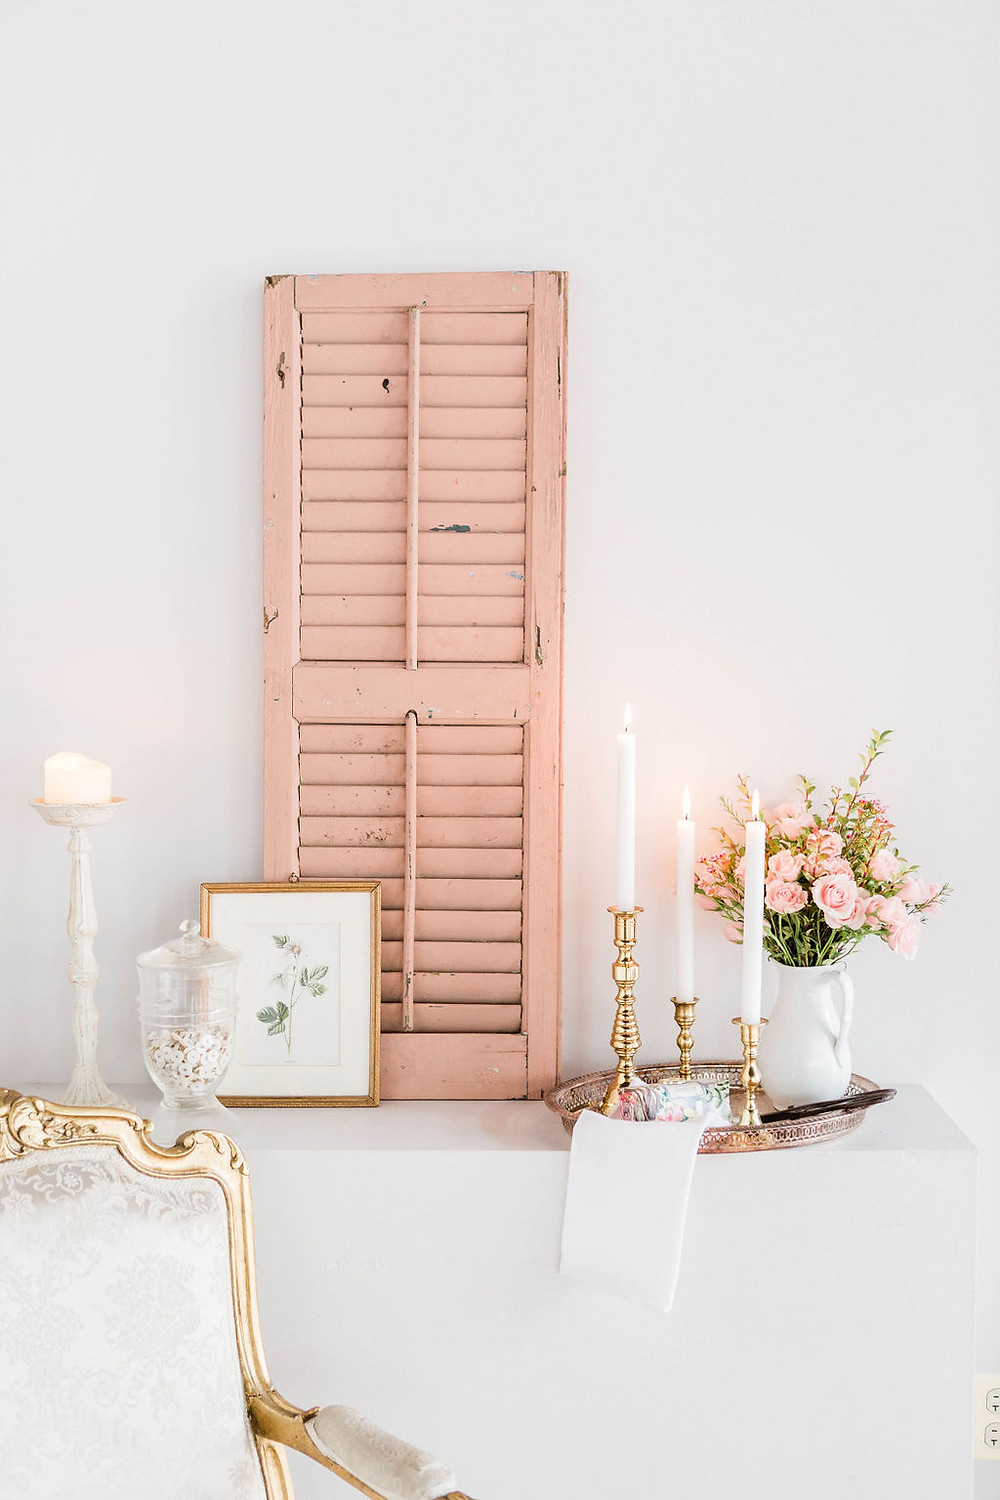 Pink shutter sets the tone for the French-style seating area with chair and vintage accent pieces